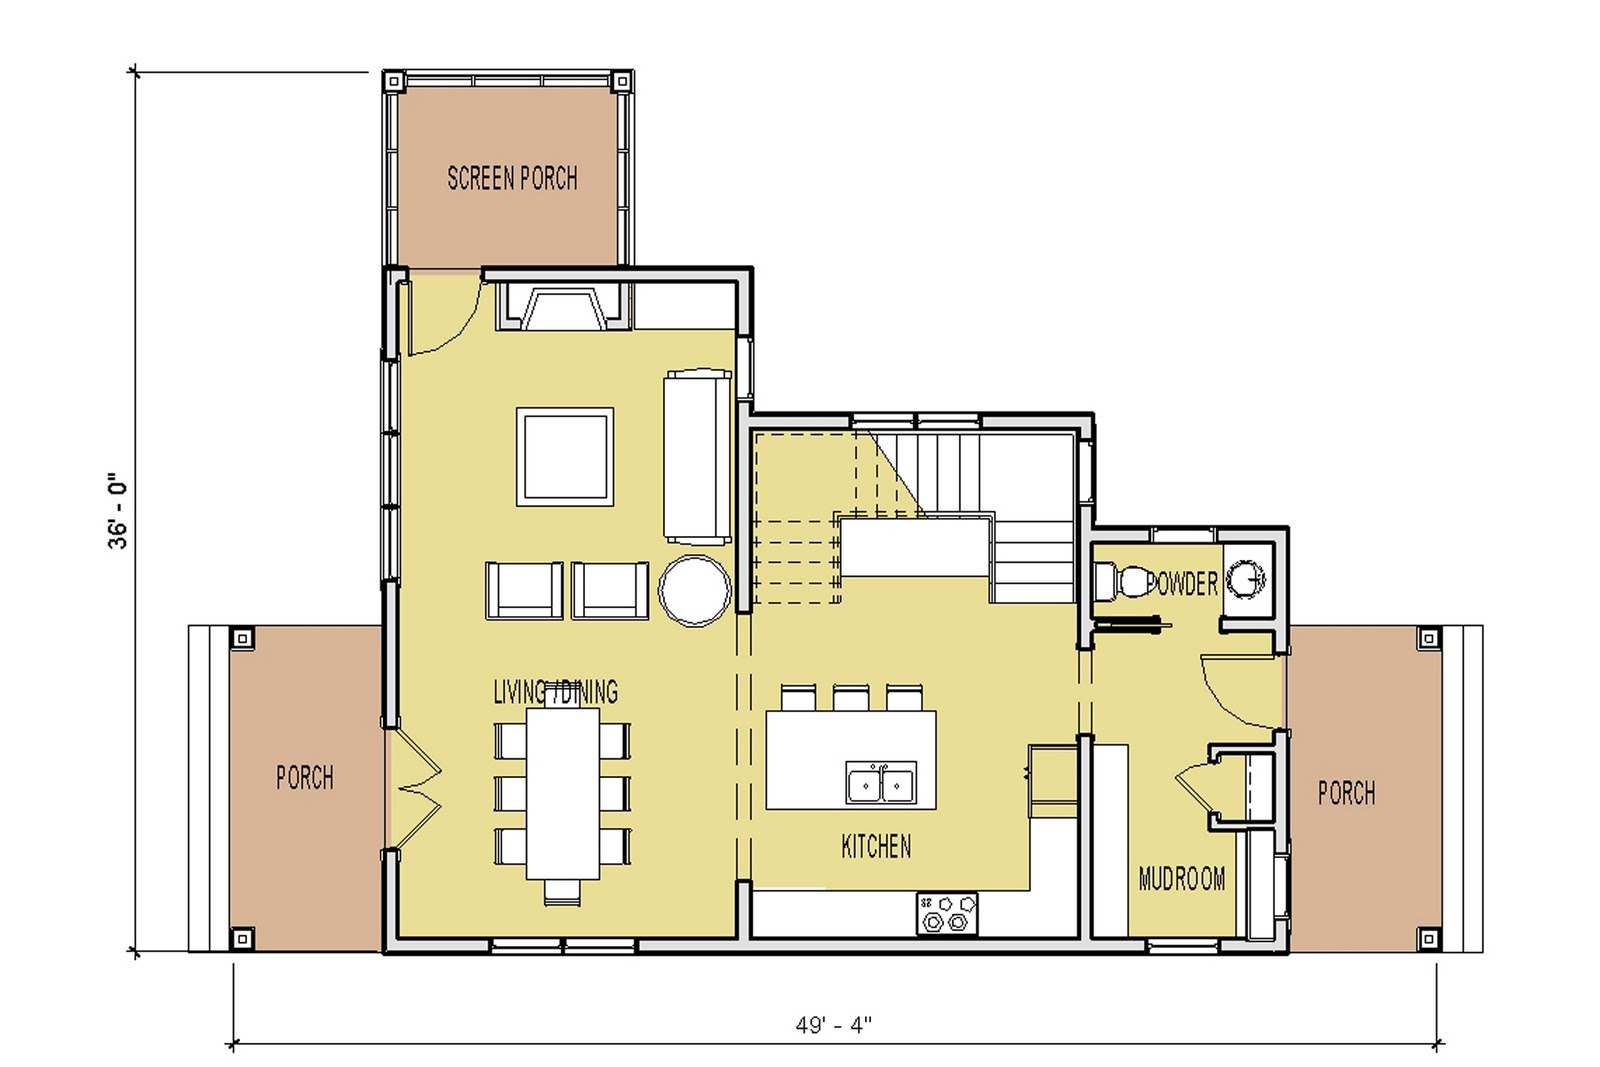 Simply Elegant Home Designs Blog New Unique Small House Plan: small foursquare house plans